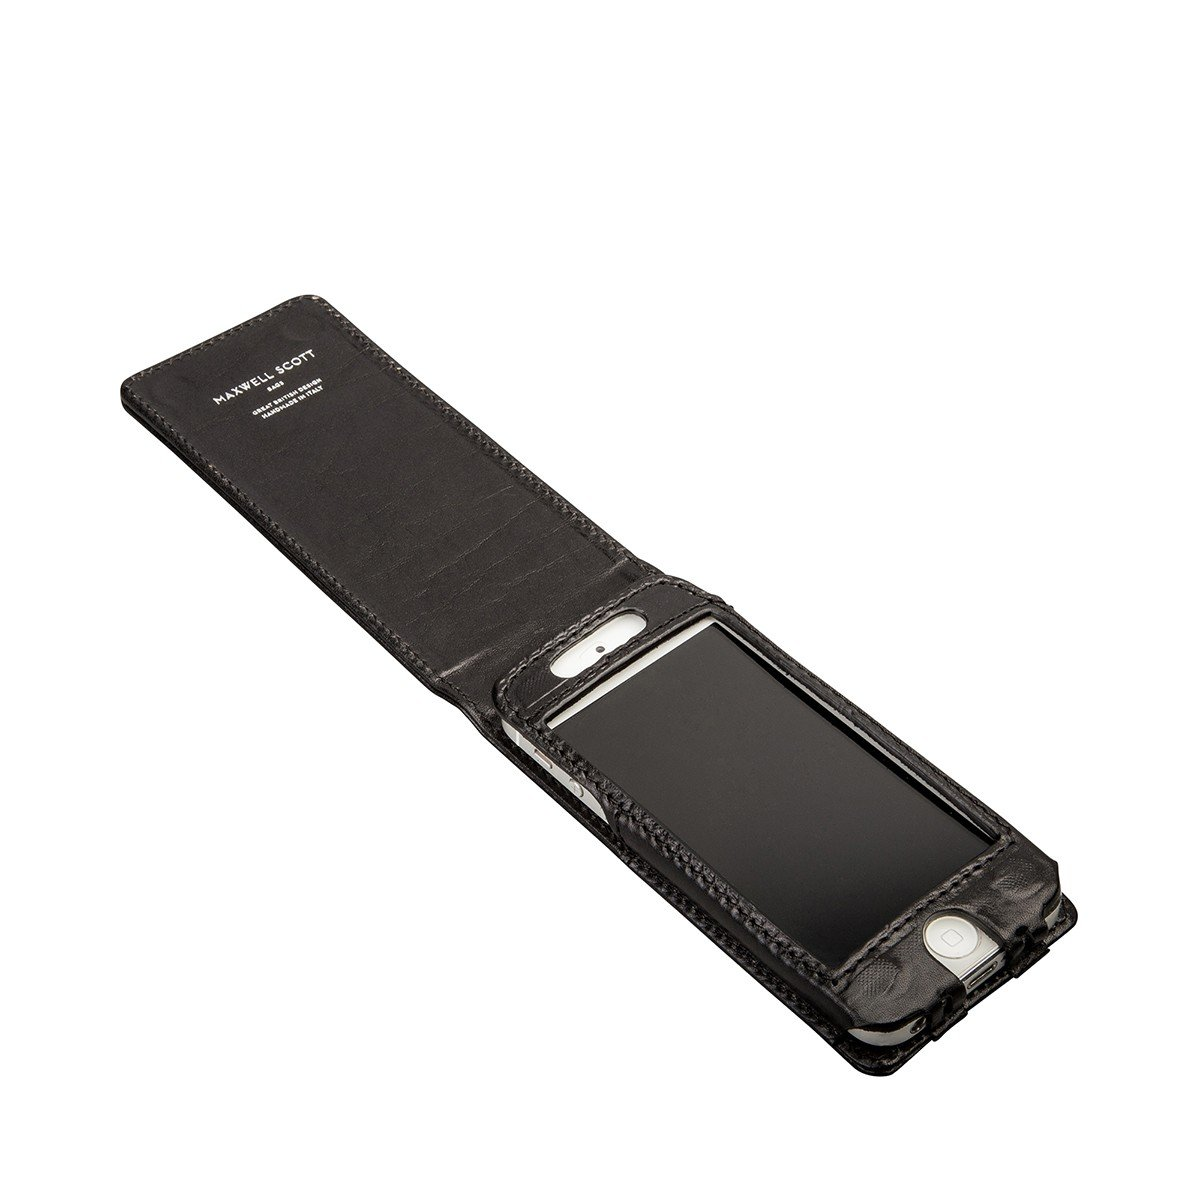 Maxwell Scott Personalized Iphone 5/5s Black Leather Flip Case for Cell (Renato) by Maxwell Scott Bags (Image #6)